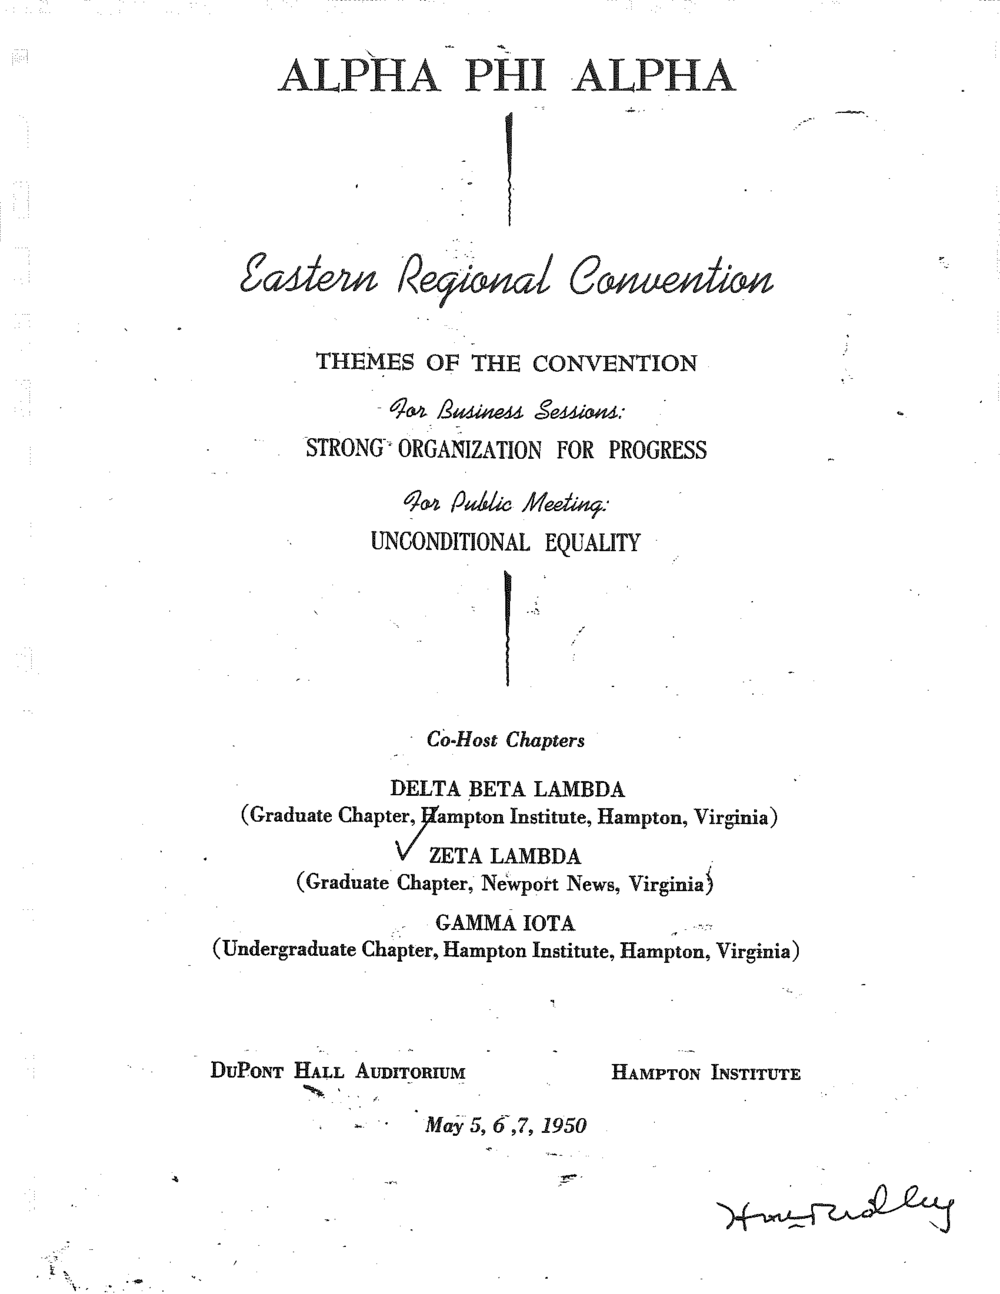 Zeta Lambda 1950 - Eastern Region Convention.png